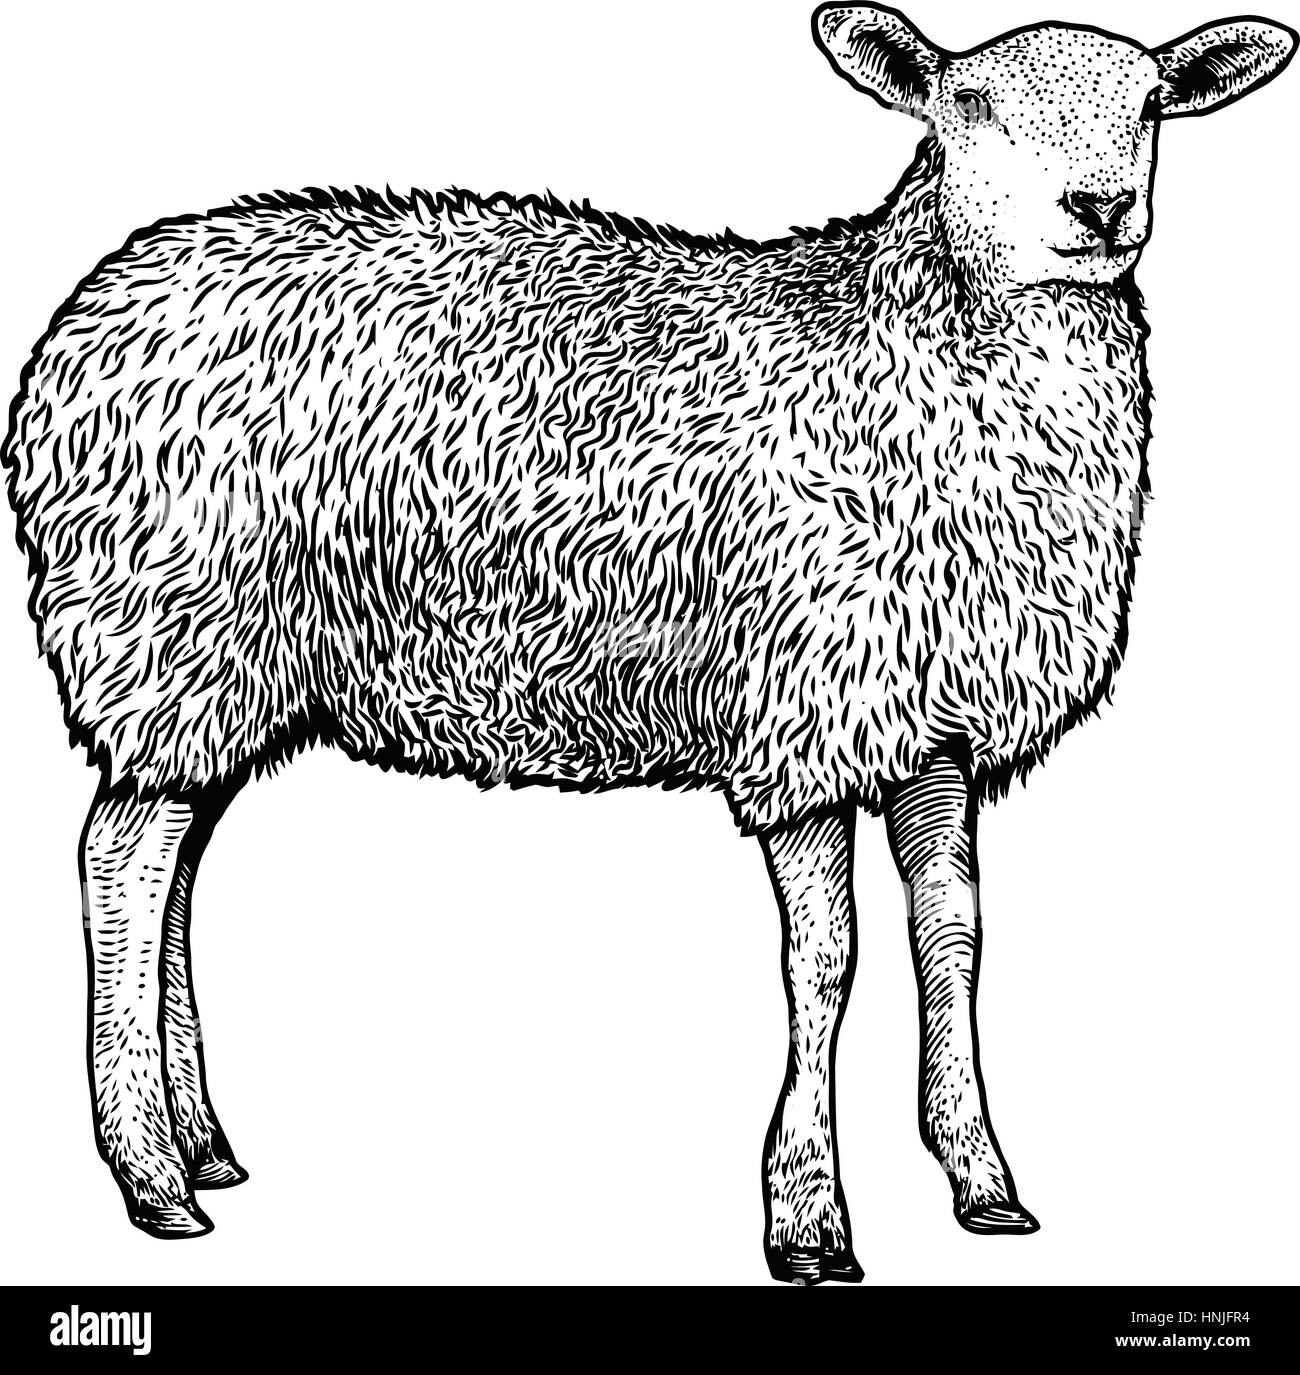 Sheep Illustration Drawing Engraving Line Art Realistic